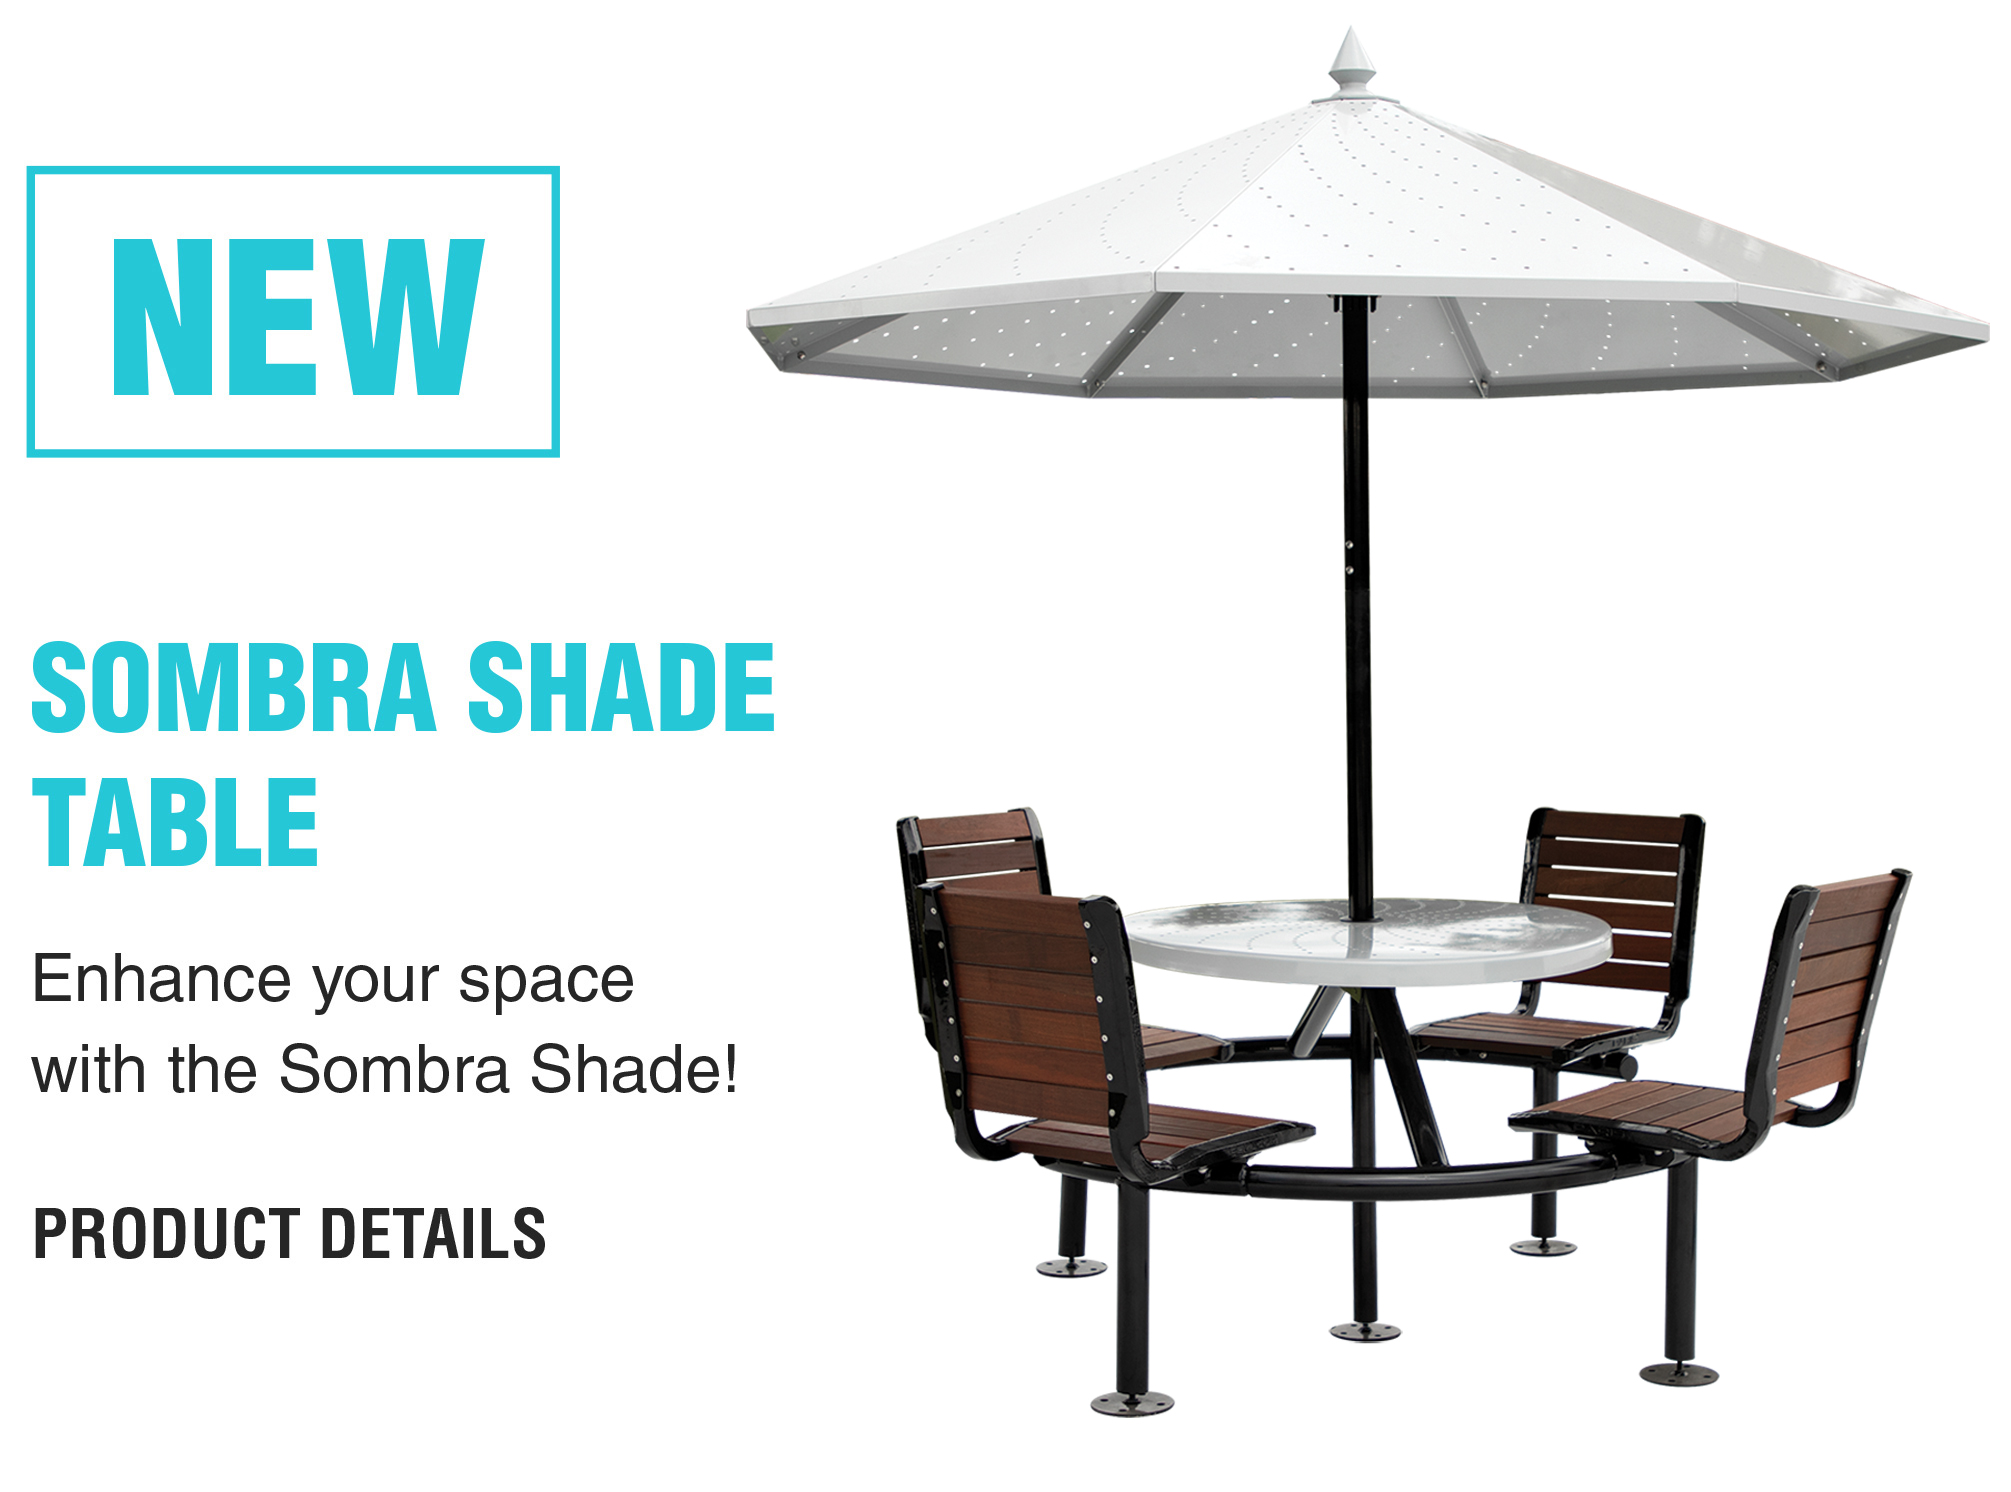 Sombra Shade Table